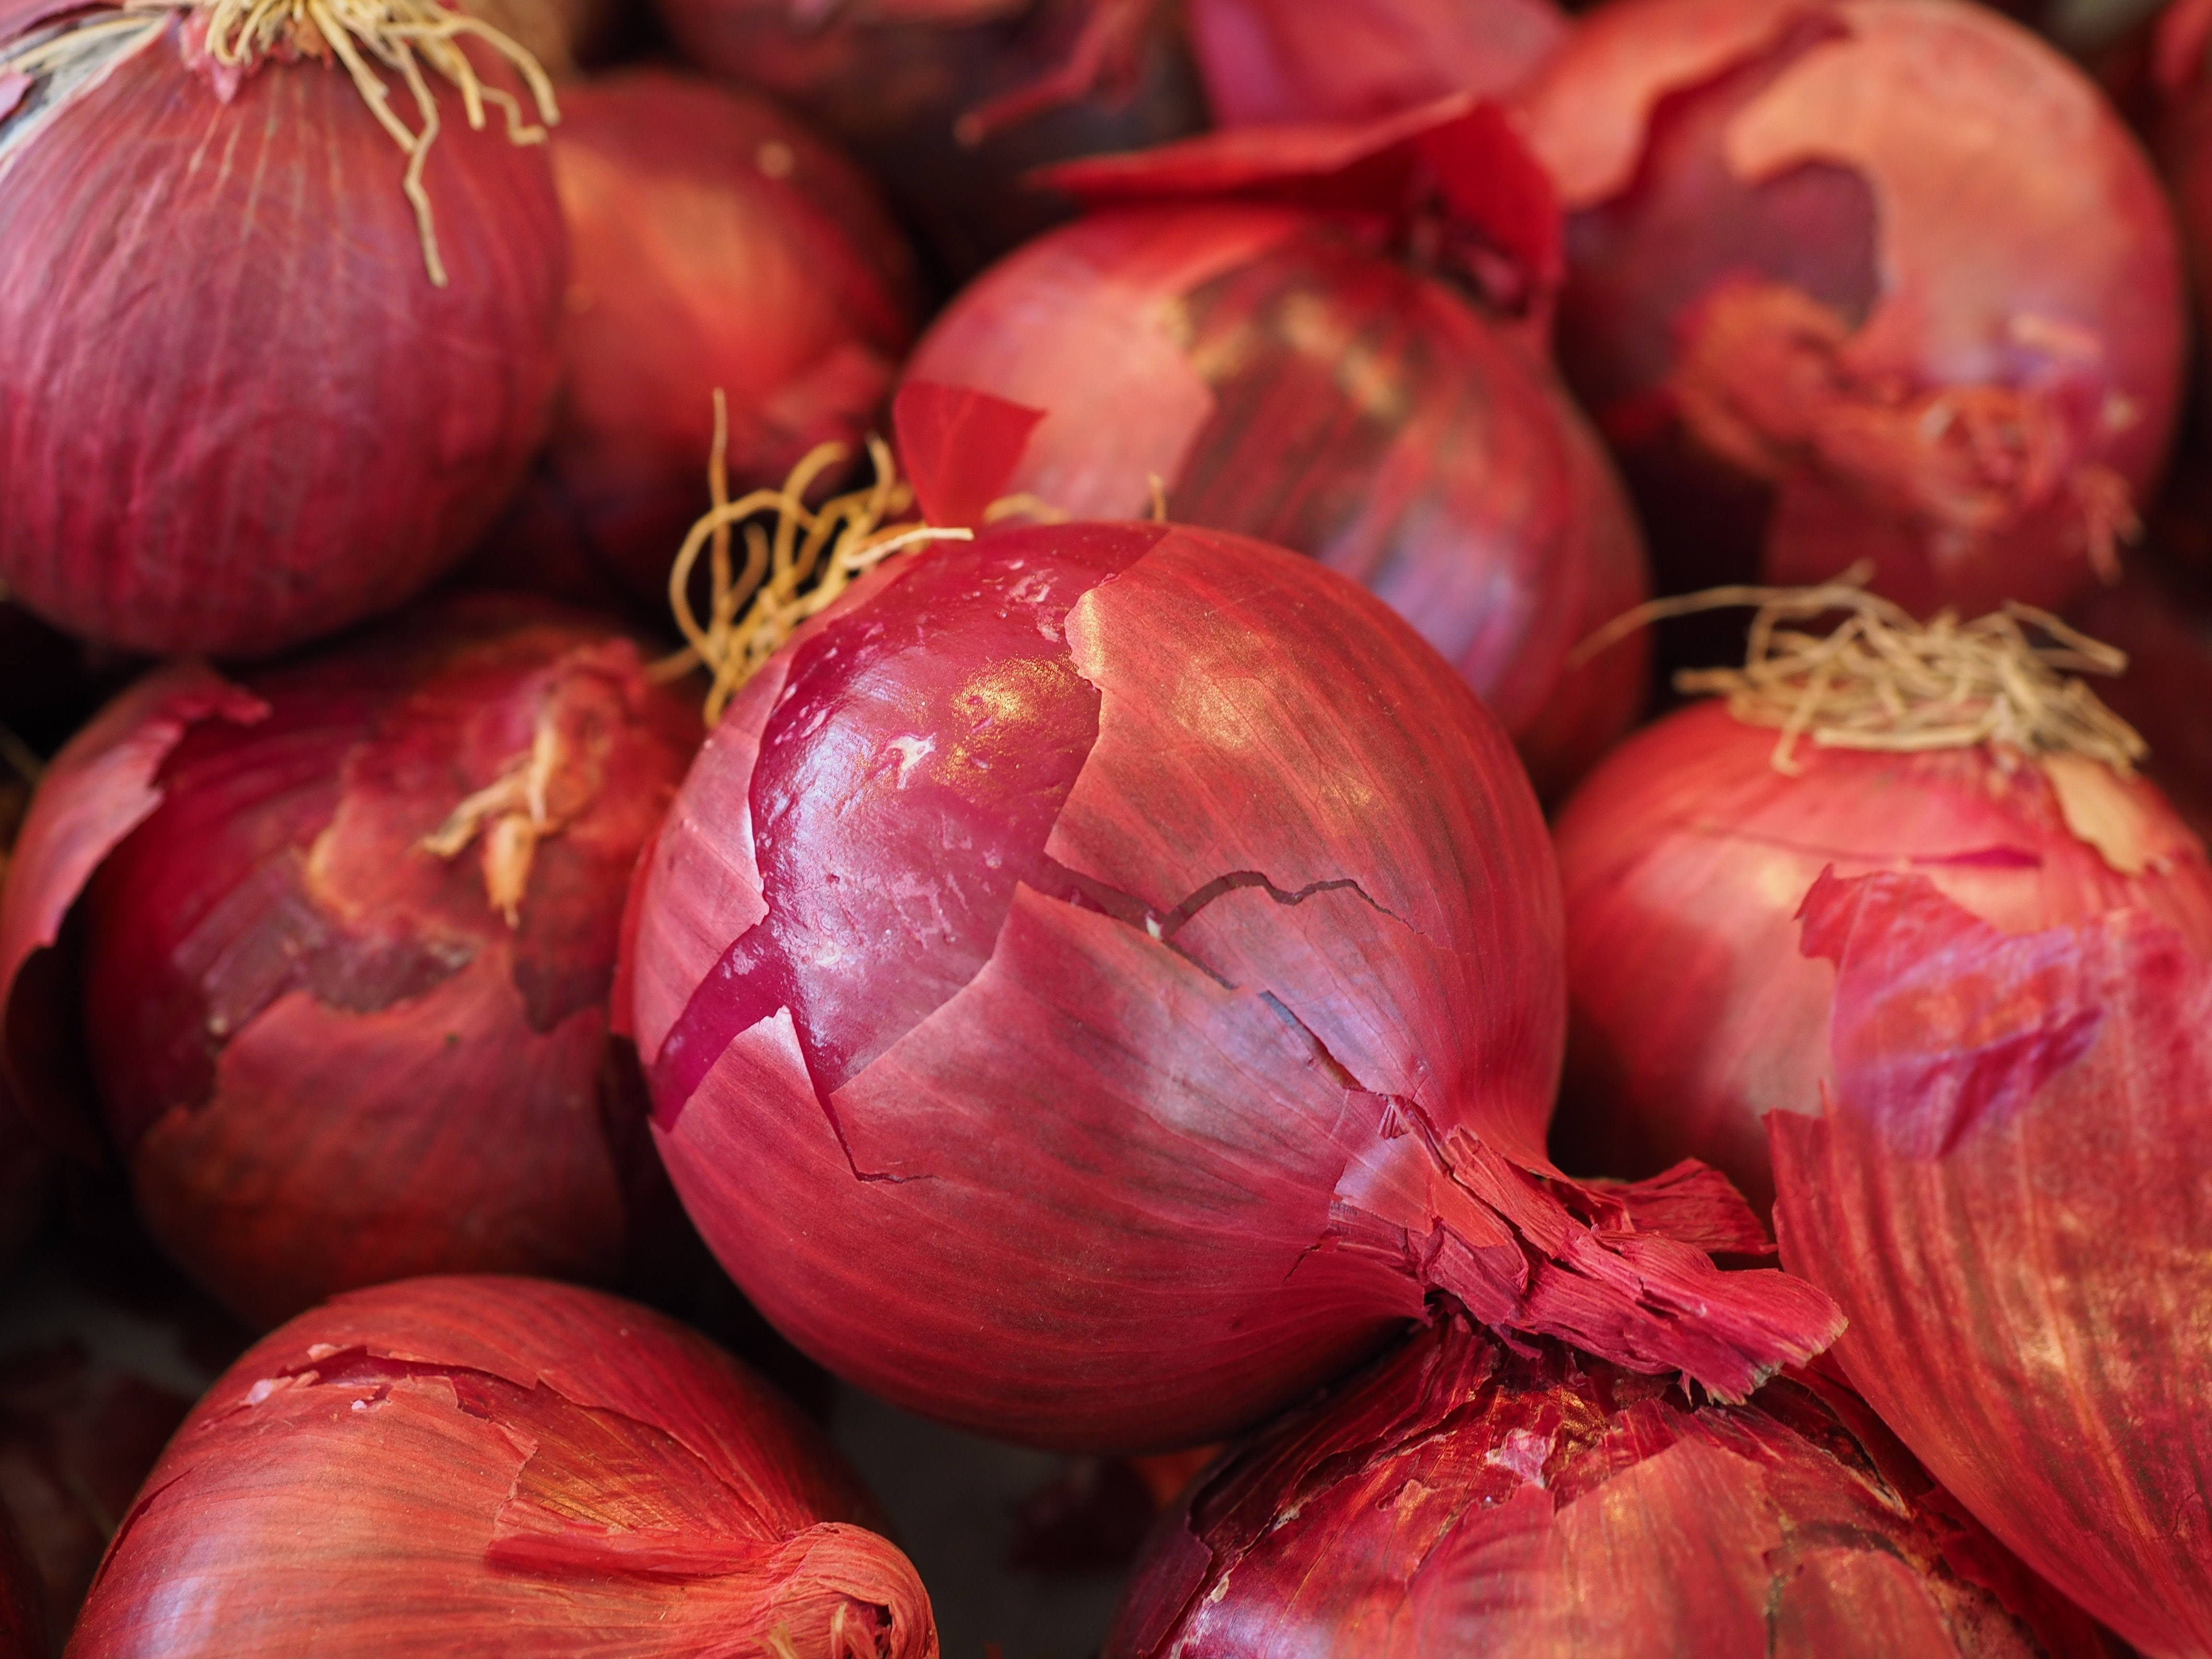 Red Onions, Close-up, Food, Healthy, Ingredients, HQ Photo